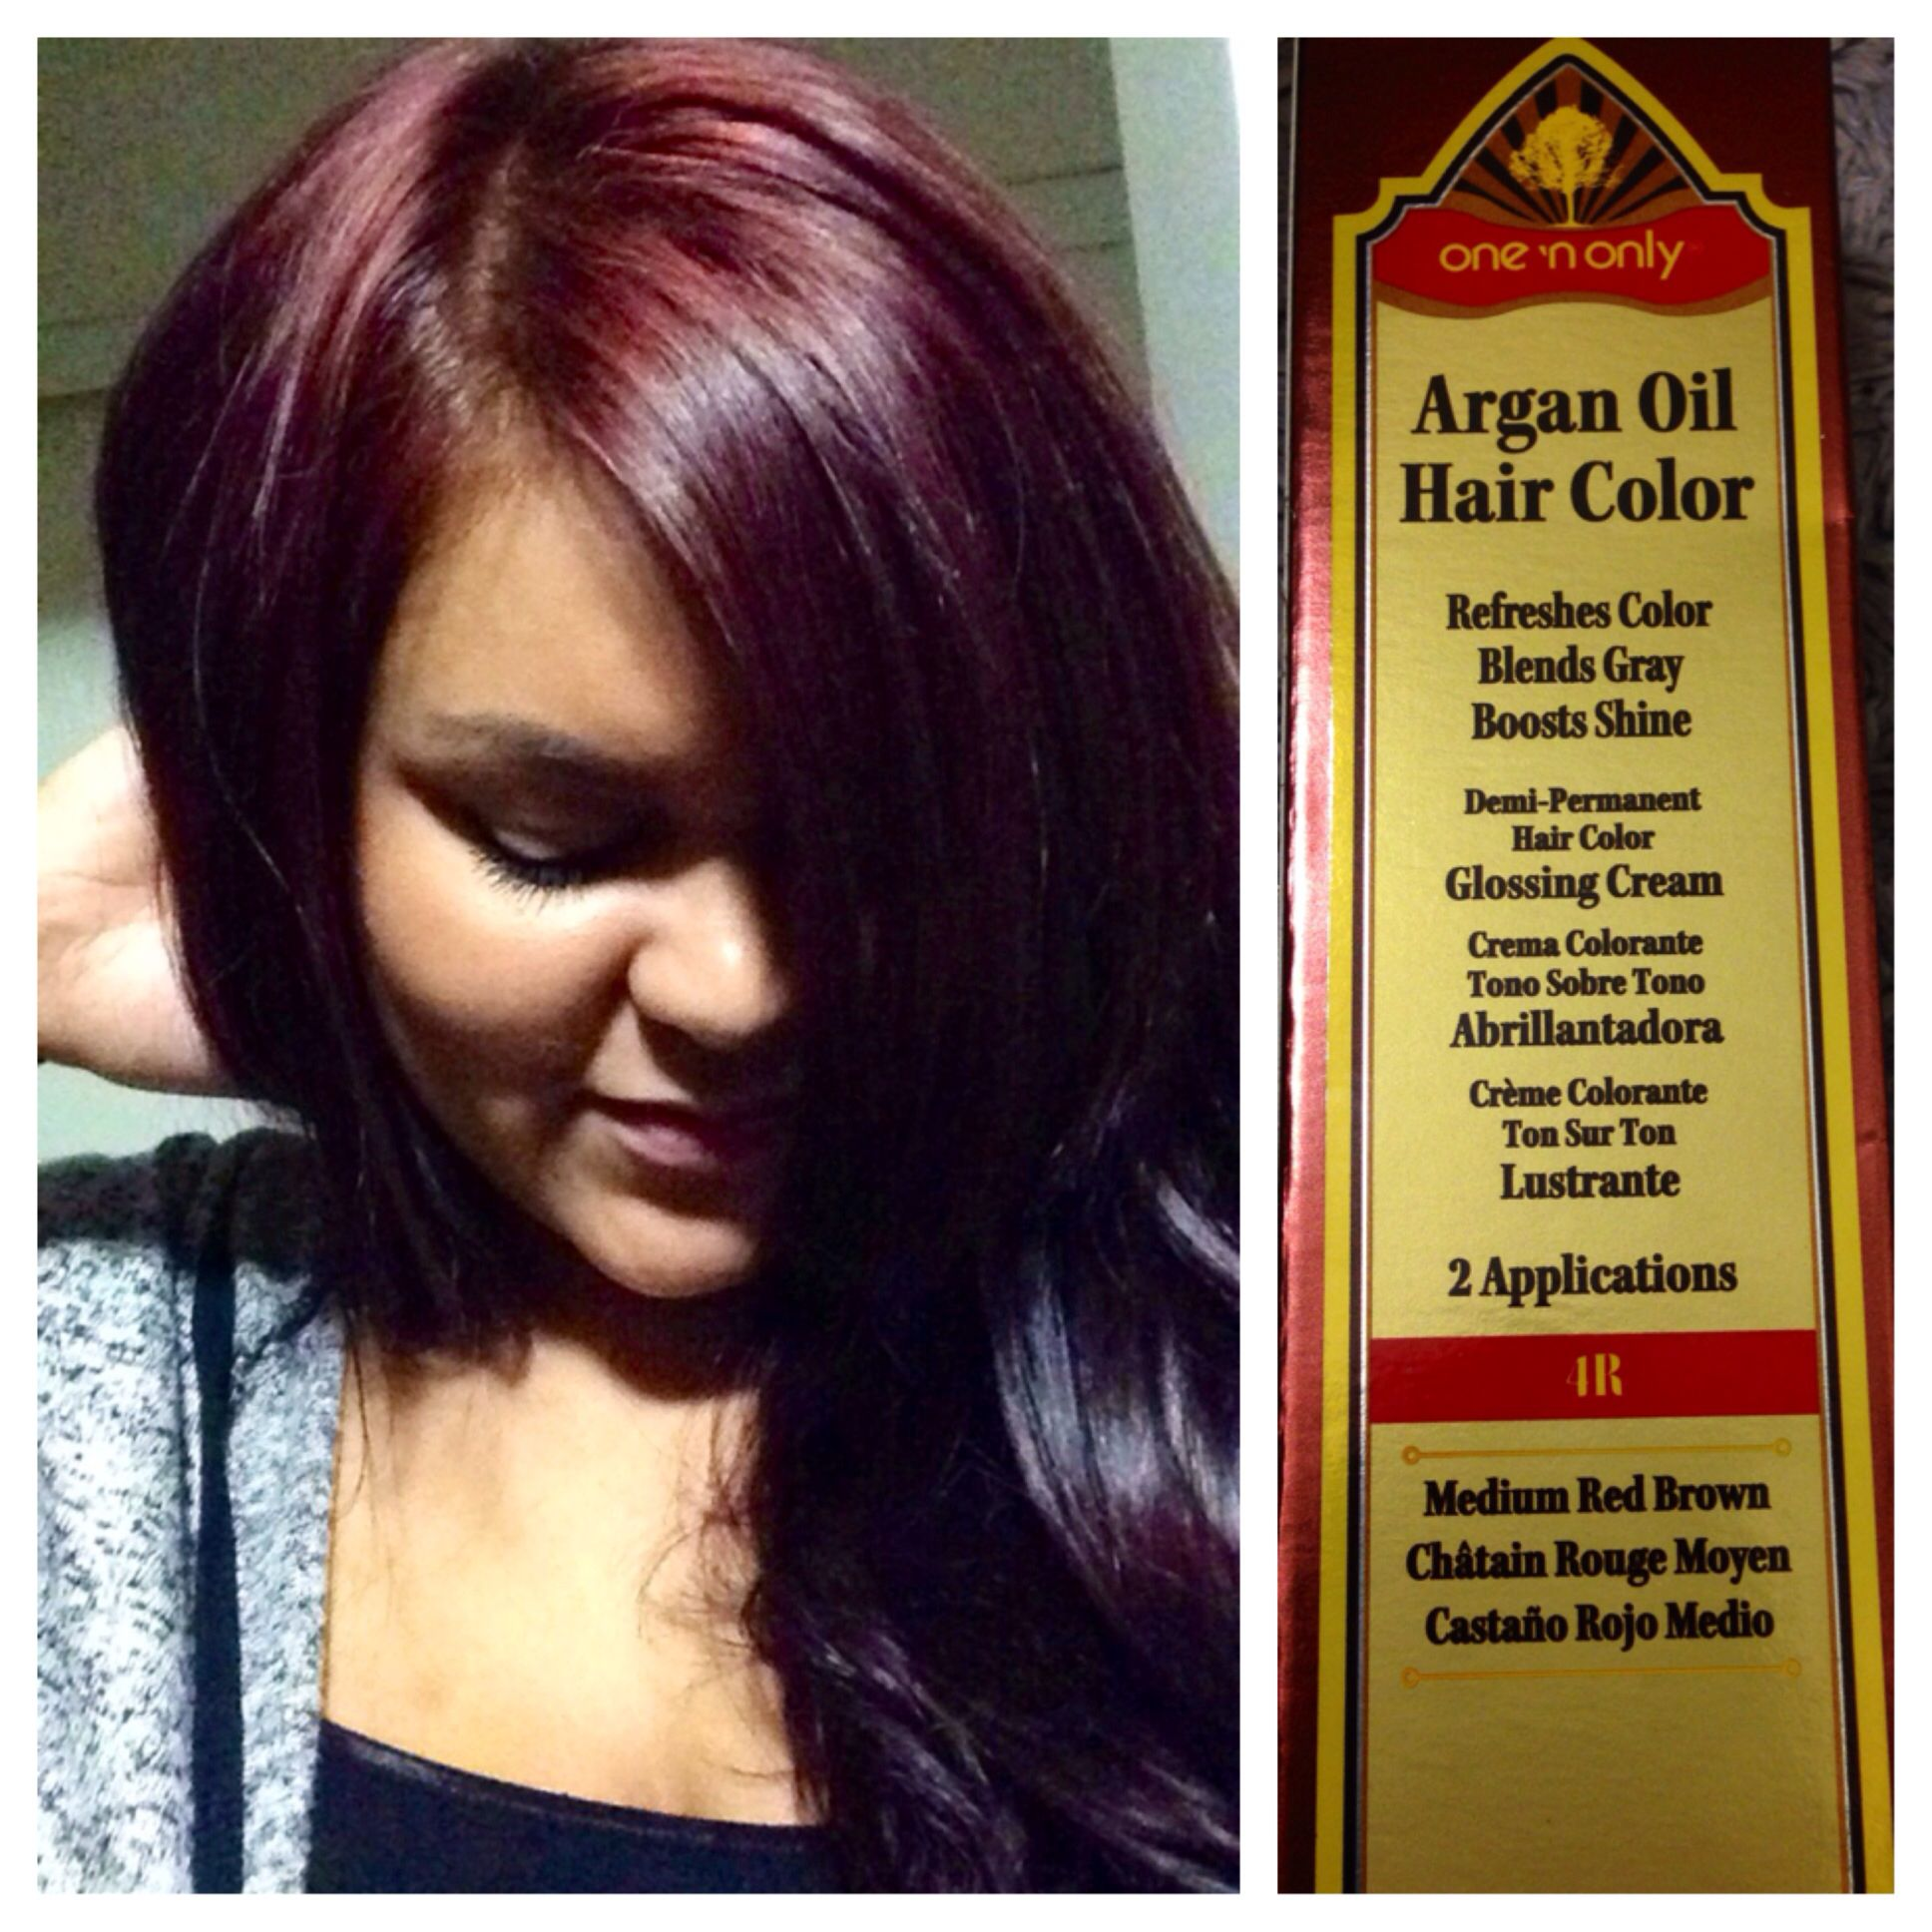 One N Only Argan Oil Hair Color Perfect Intensity Review